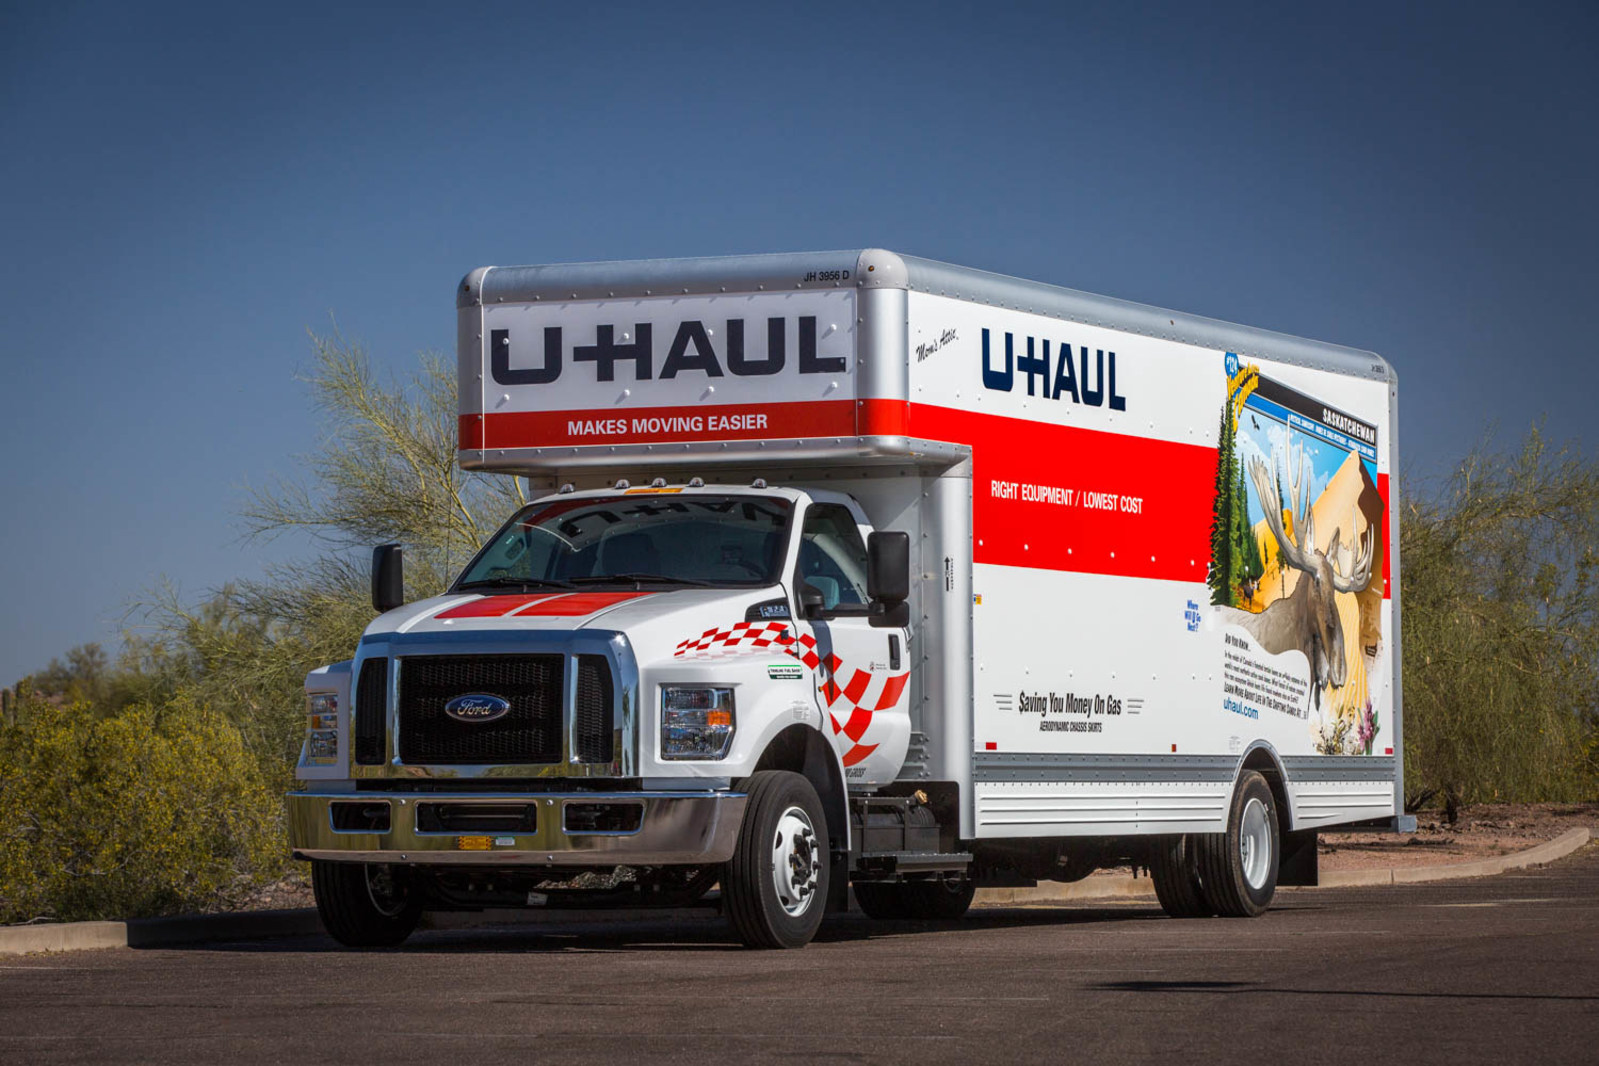 Houston remains the No. 1 U-Haul U.S. Destination City for the eighth year in a row, according to the latest U-Haul migration trends report. (PRNewsfoto/U-Haul)